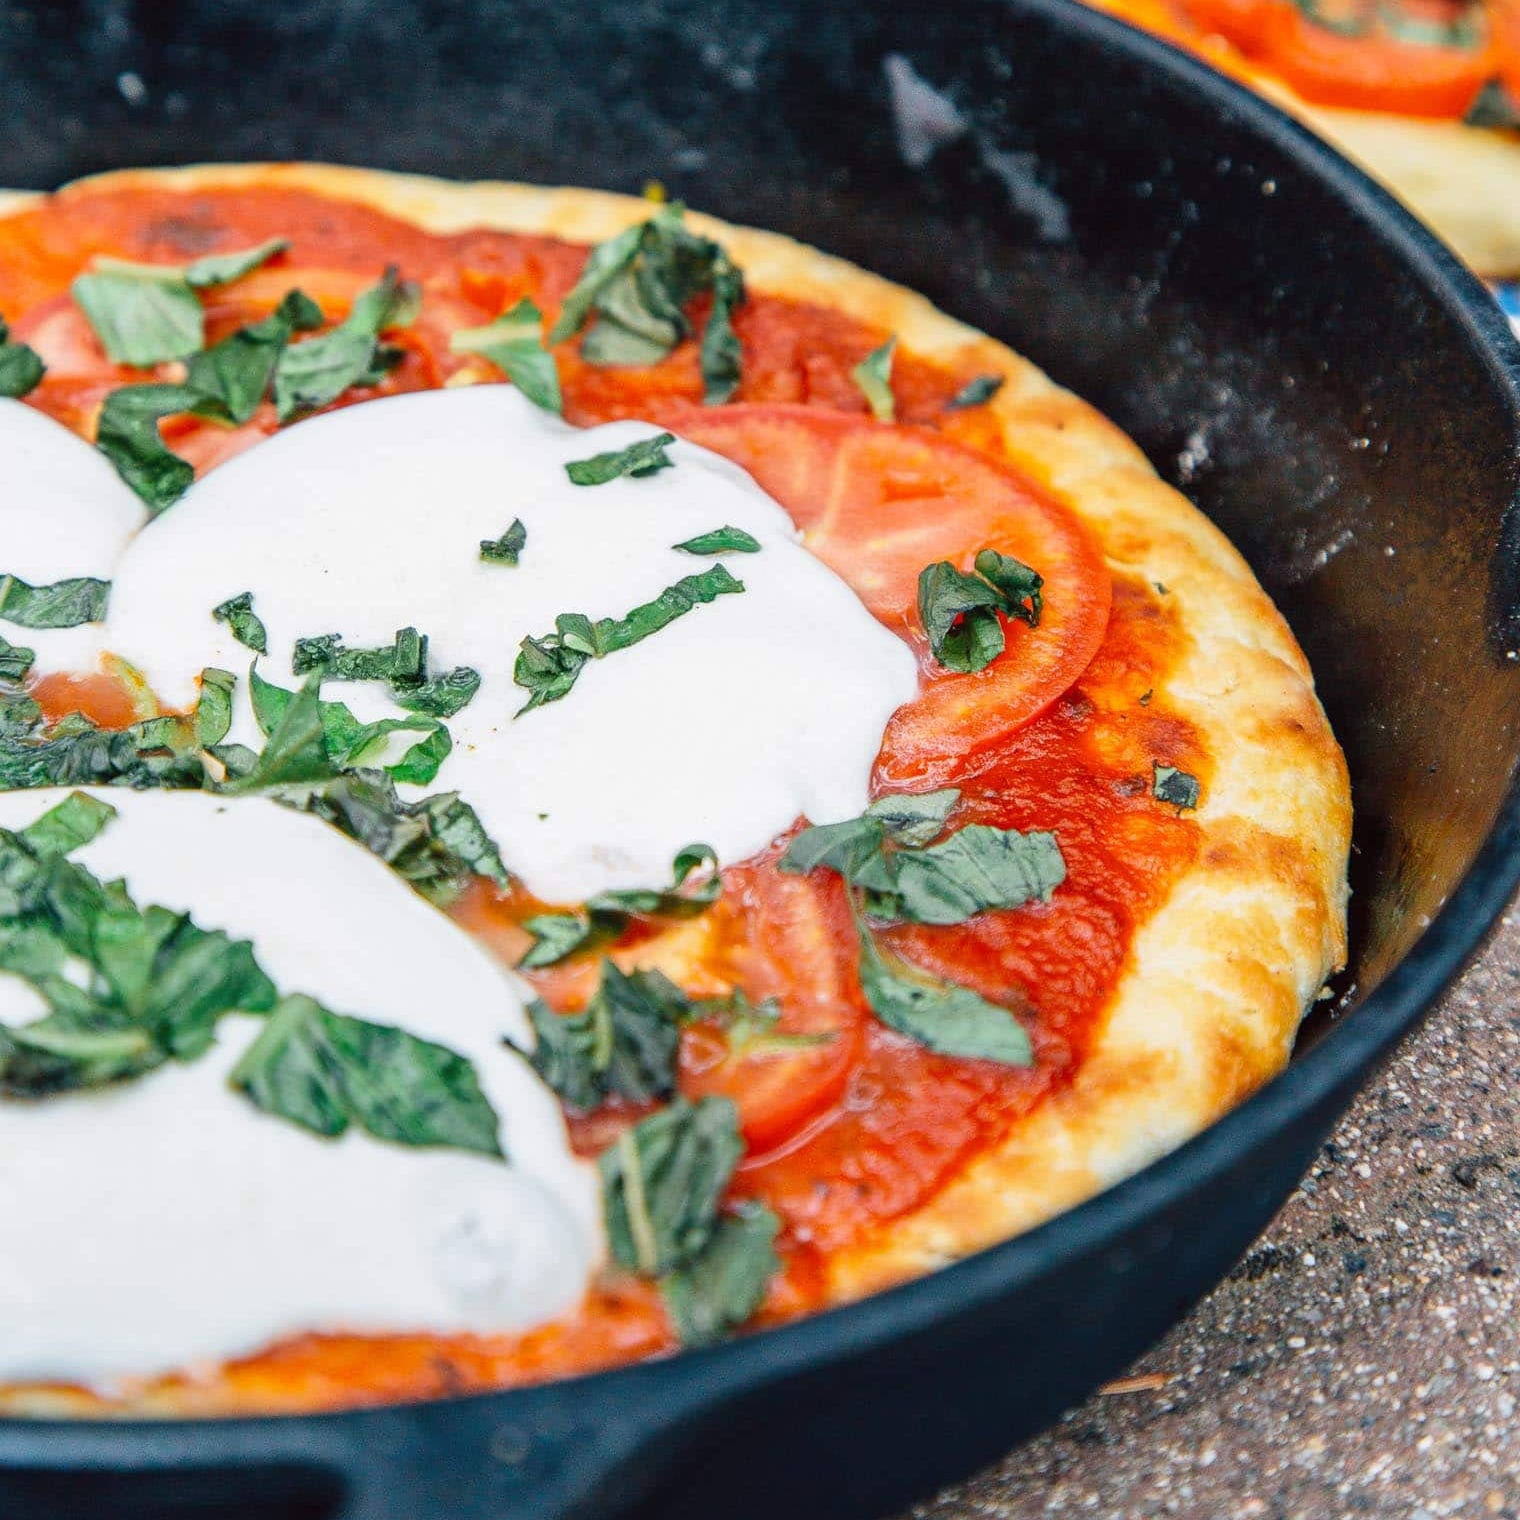 Pizza topped with mozzarella cheese slices and basil in a cast iron skillet